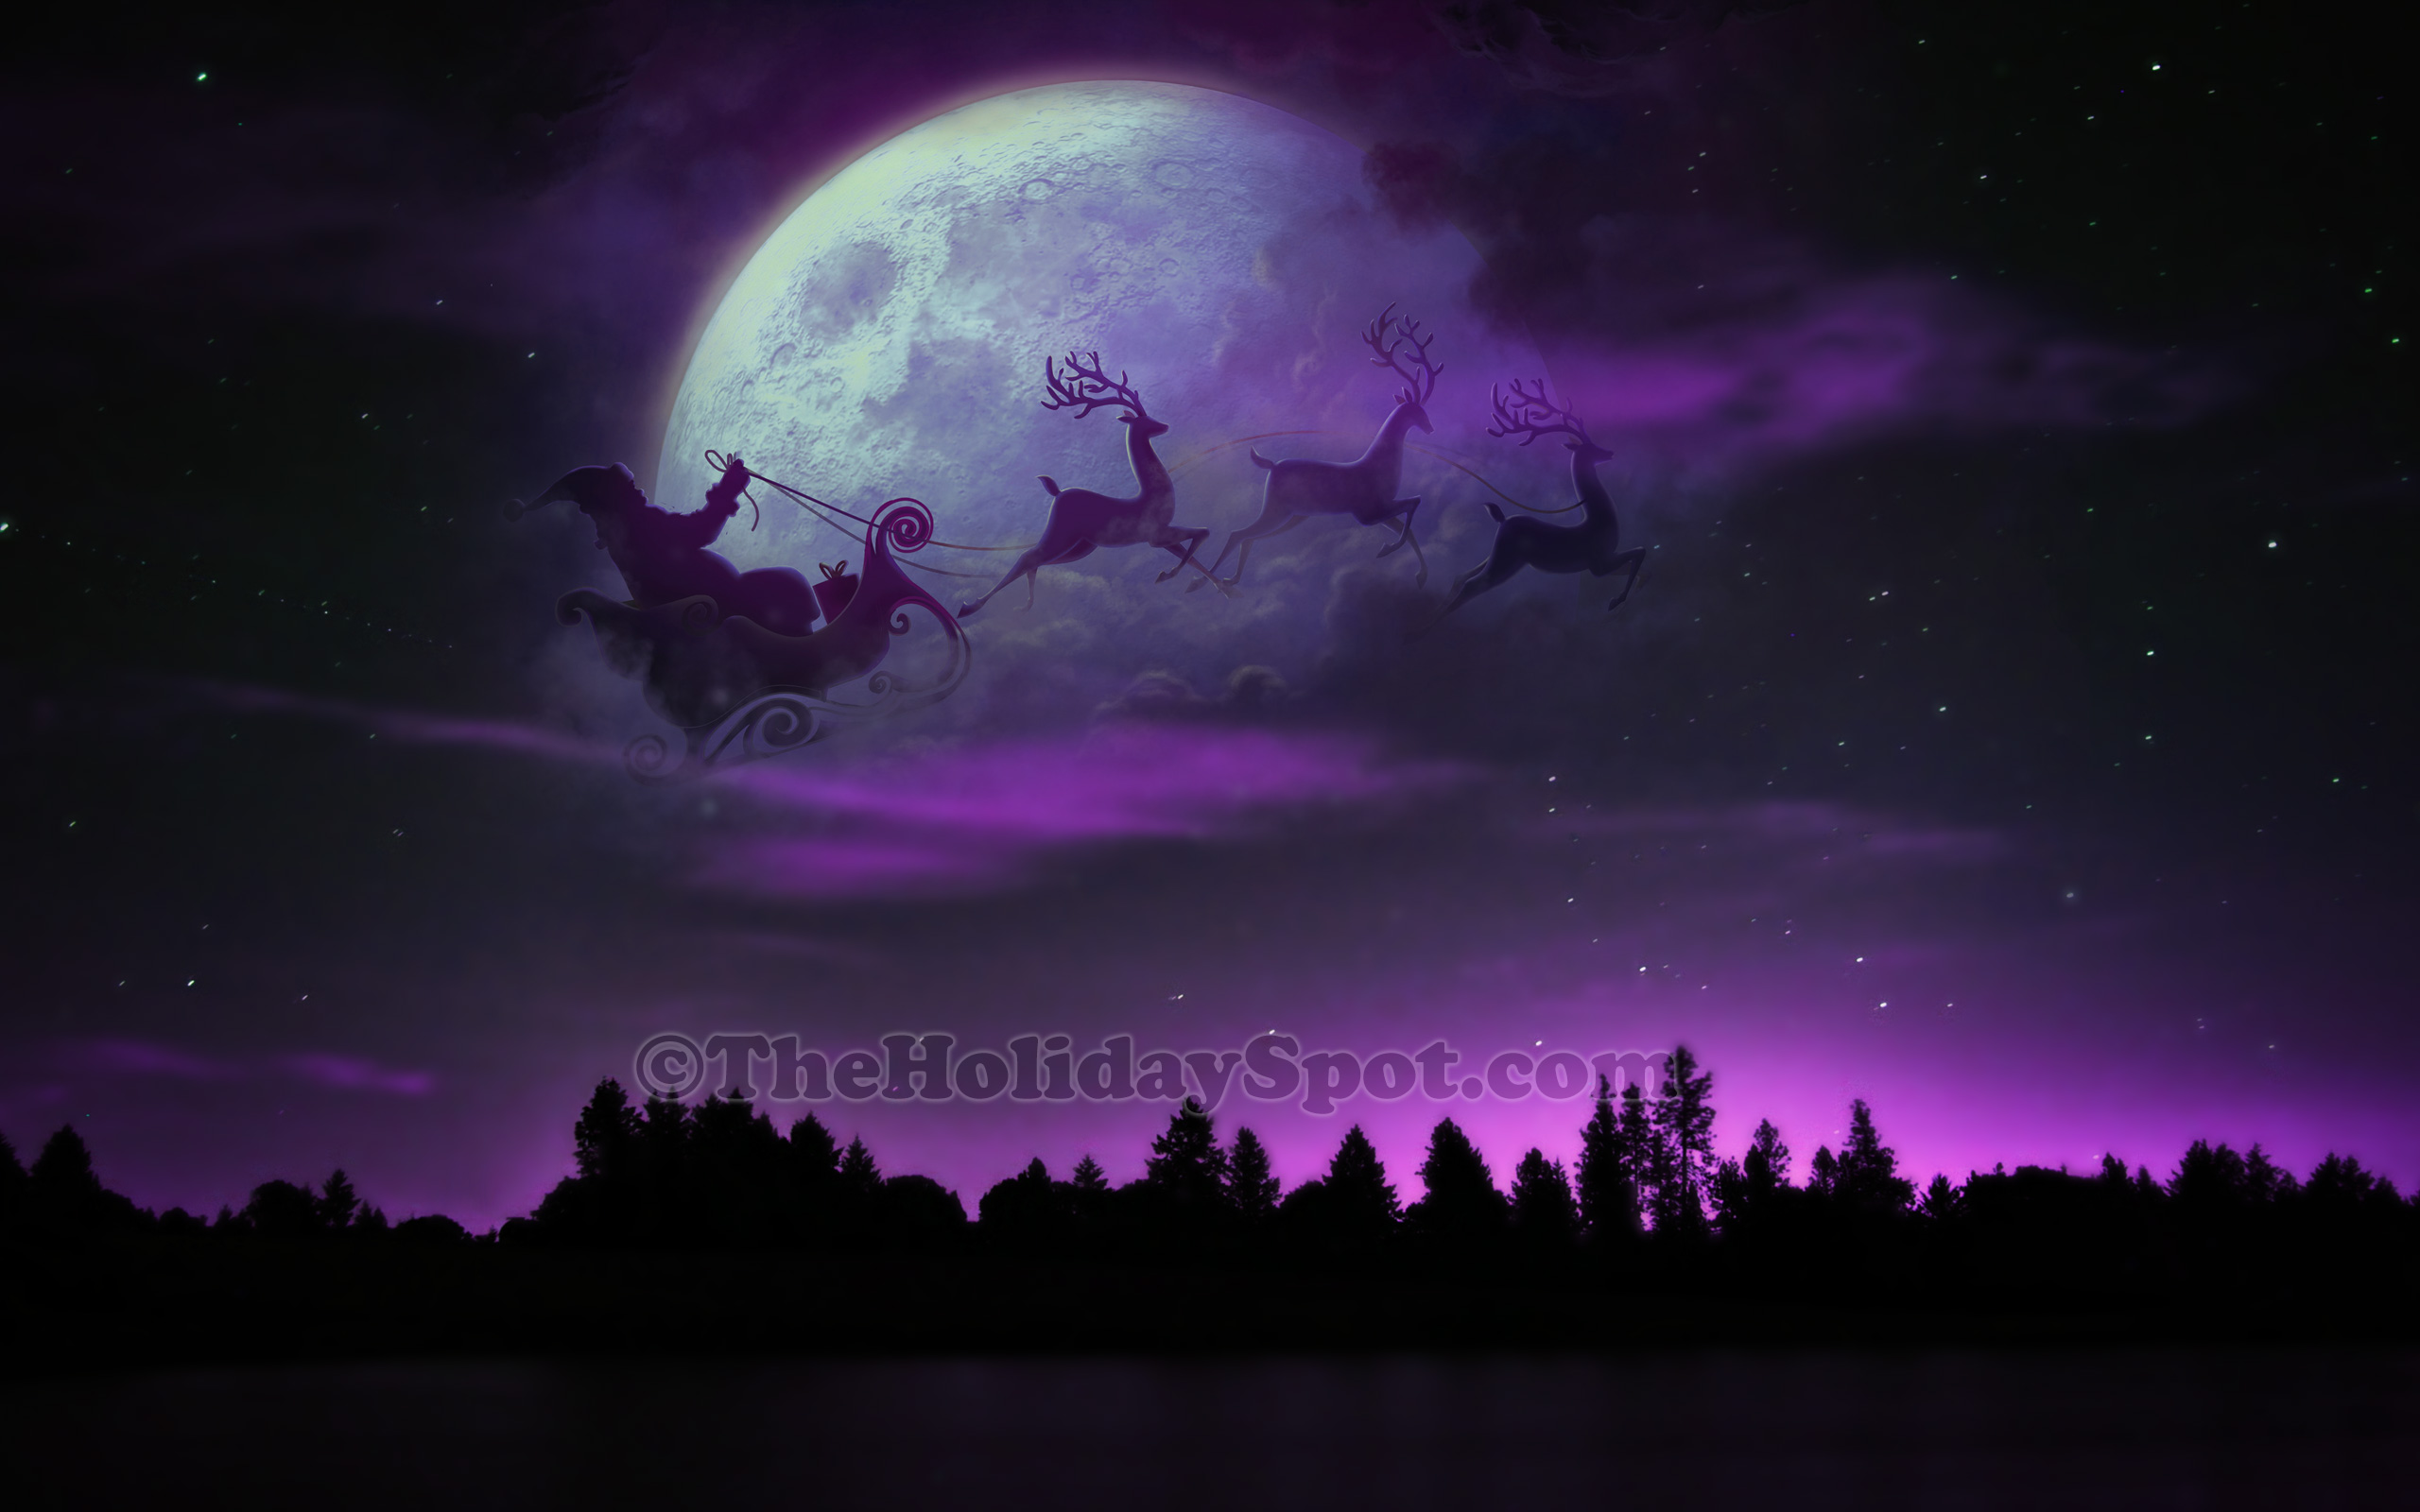 Free christmas wallpapers download hd wallpaper hd wallpaper santa sleigh and reindeer at christmas night voltagebd